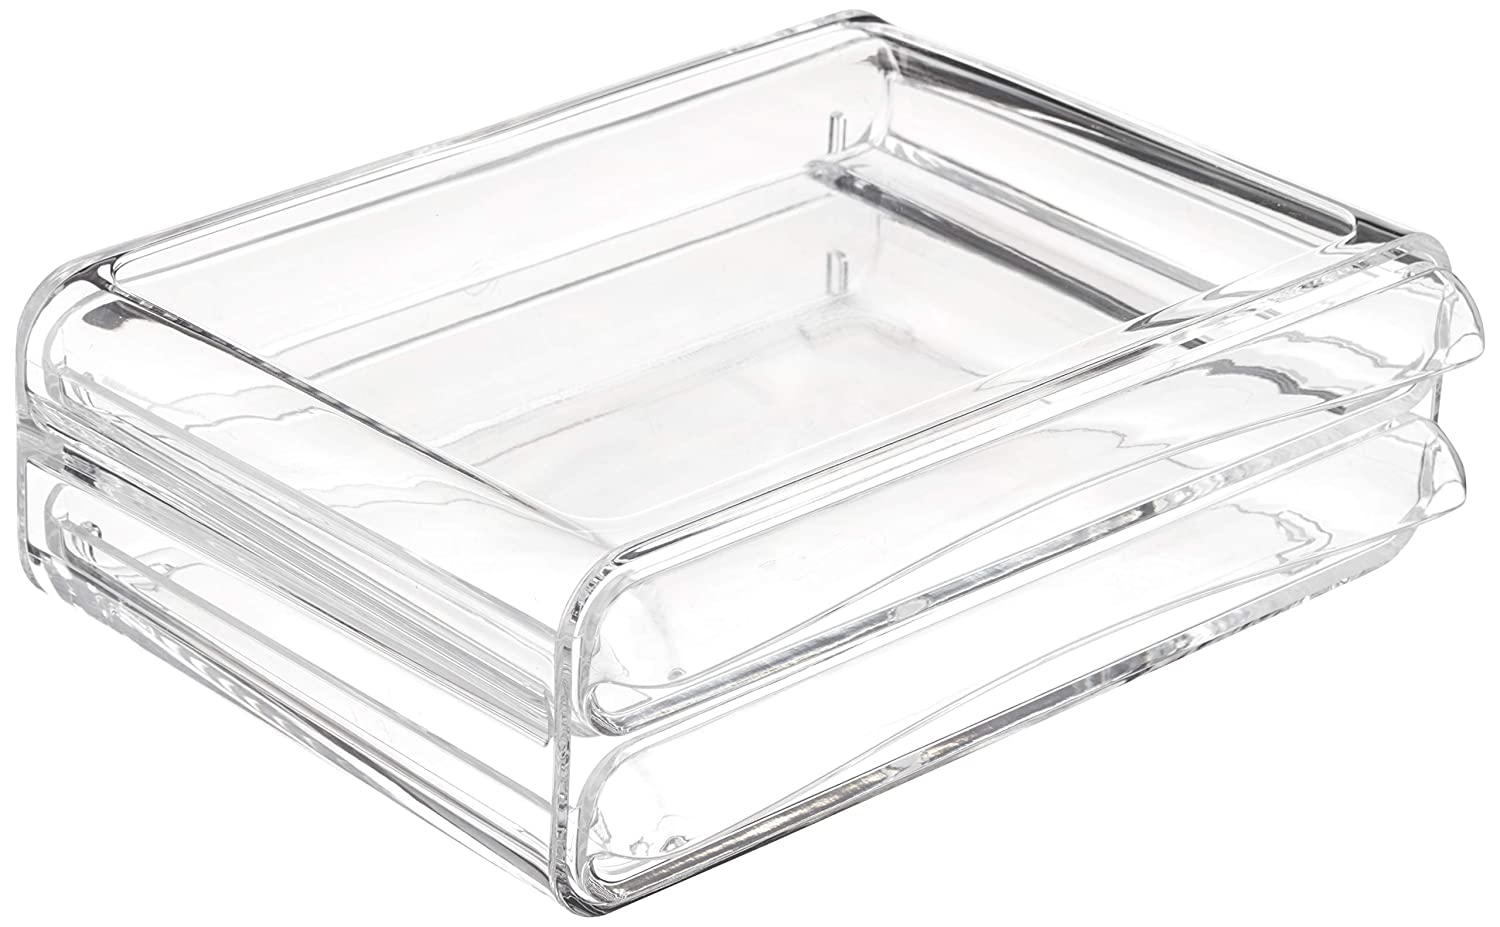 AmazonBasics 2-Drawer Acrylic Beauty Organizer